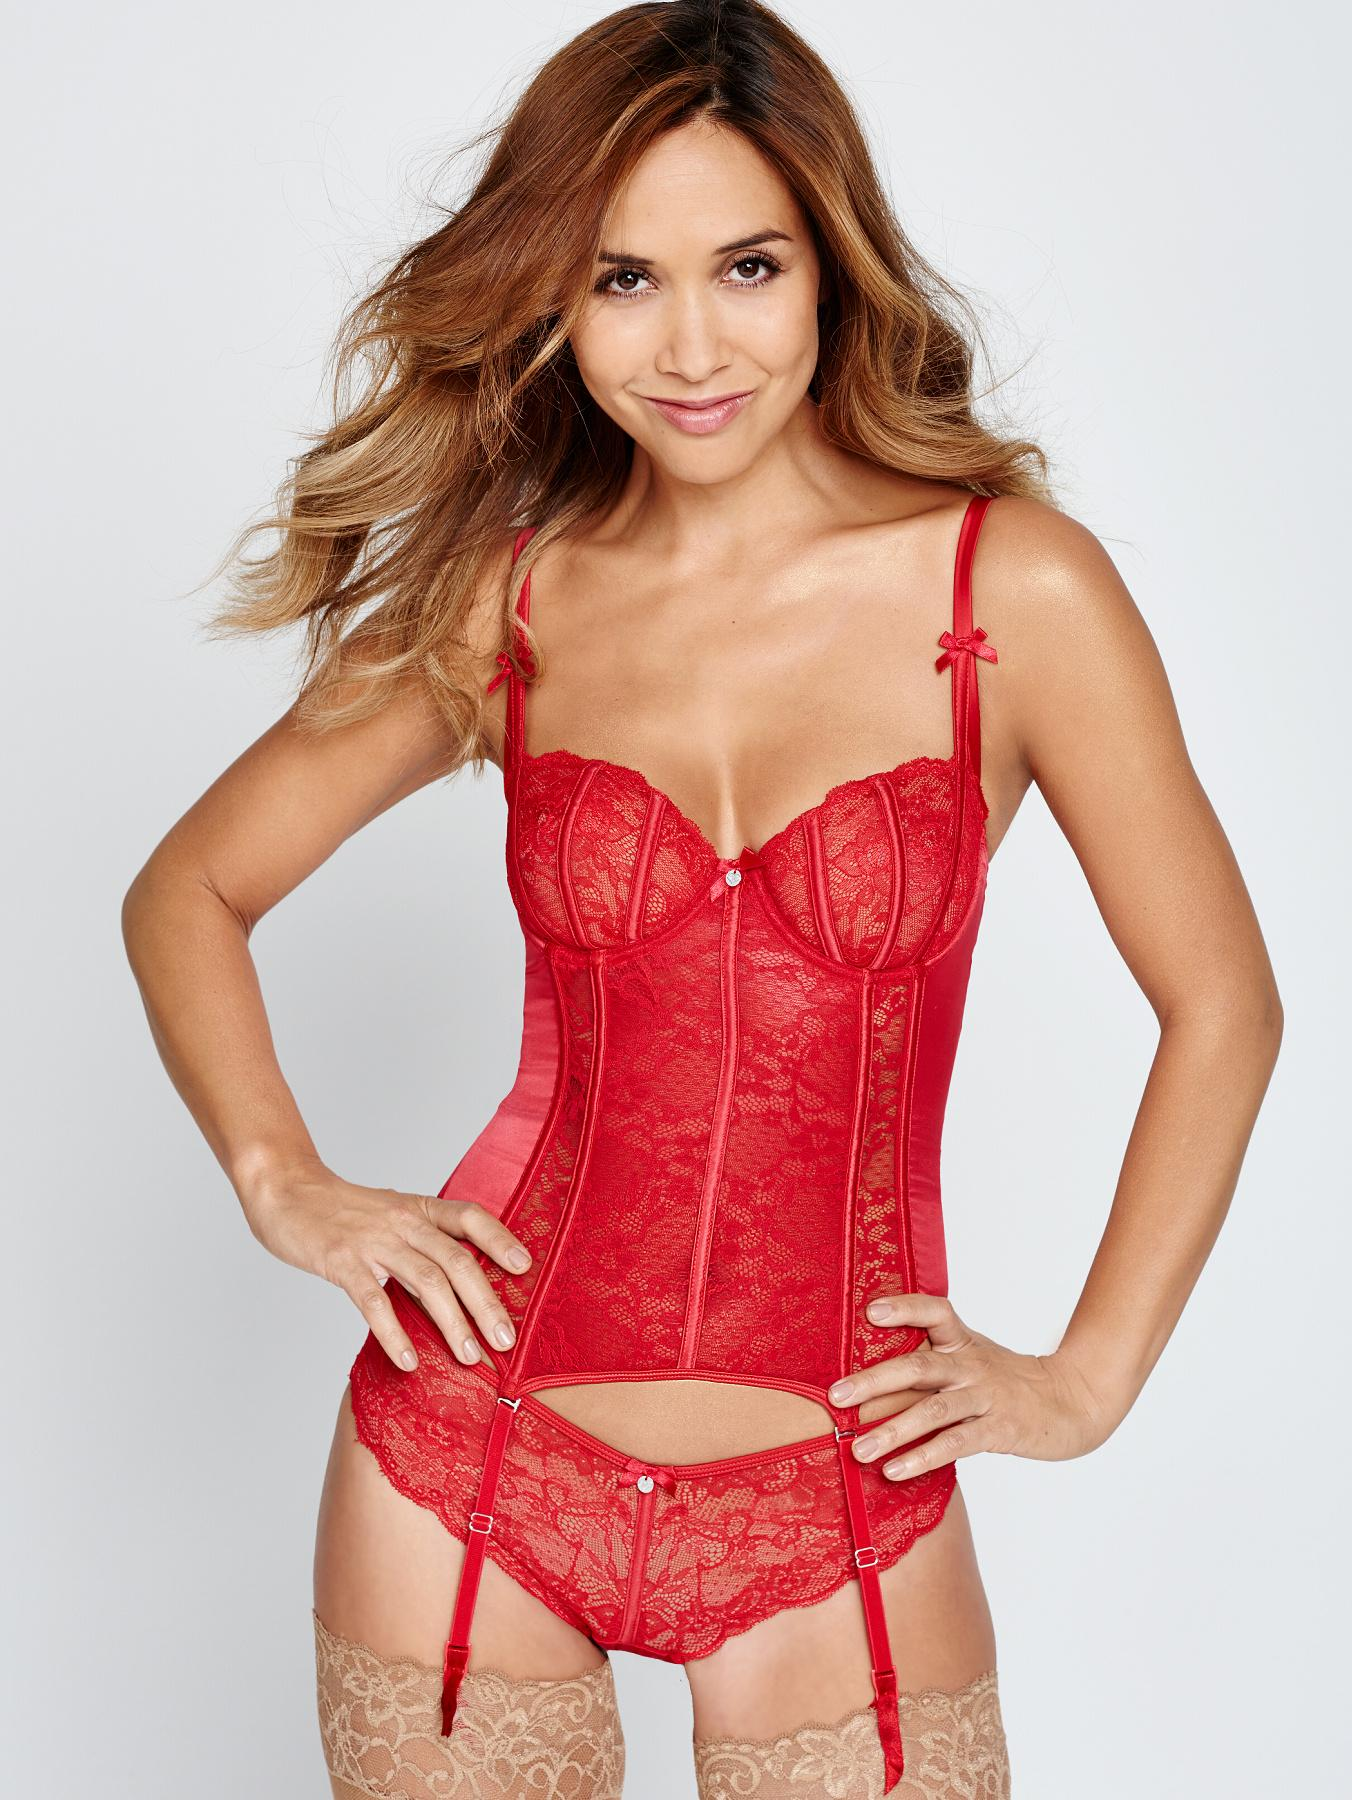 Myleene Klass Lace Briefs - Red, Red